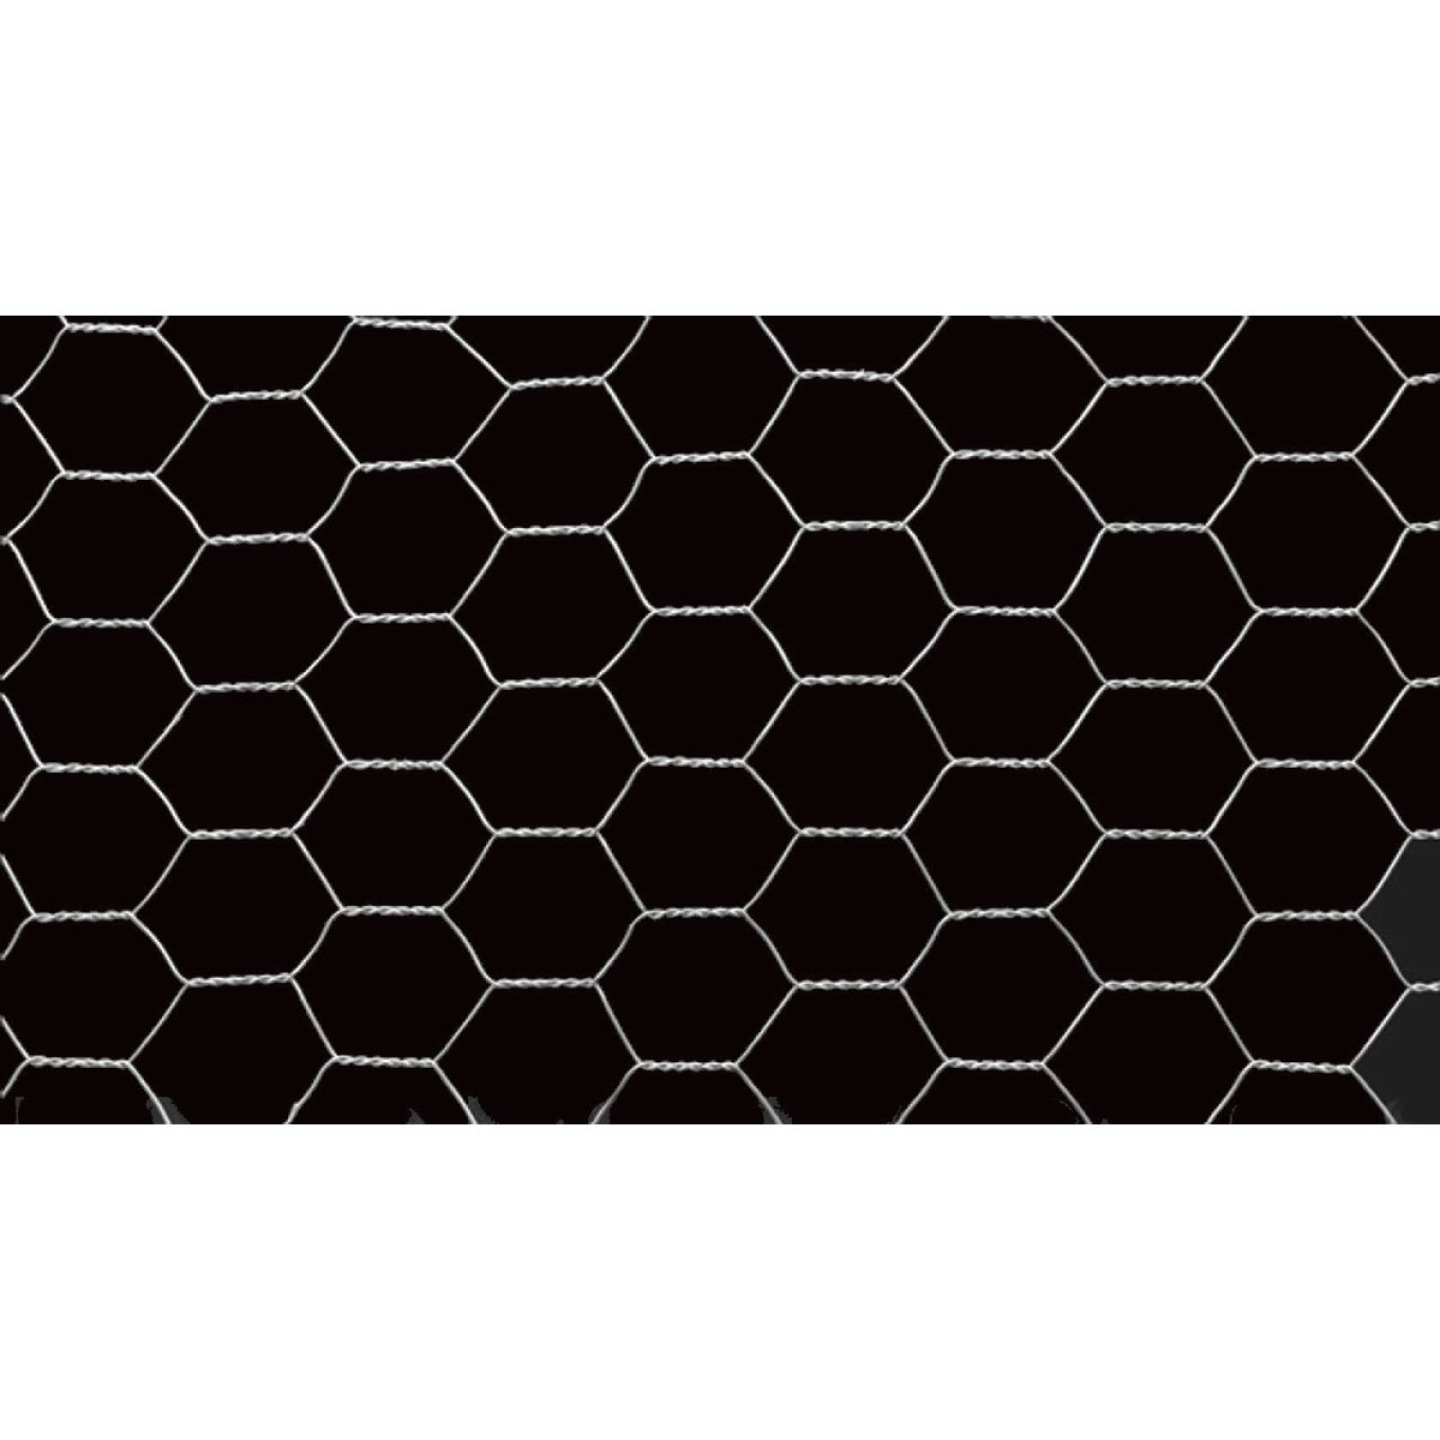 Do it 2 In. x 72 In. H. x 150 Ft. L. Hexagonal Wire Poultry Netting Image 3